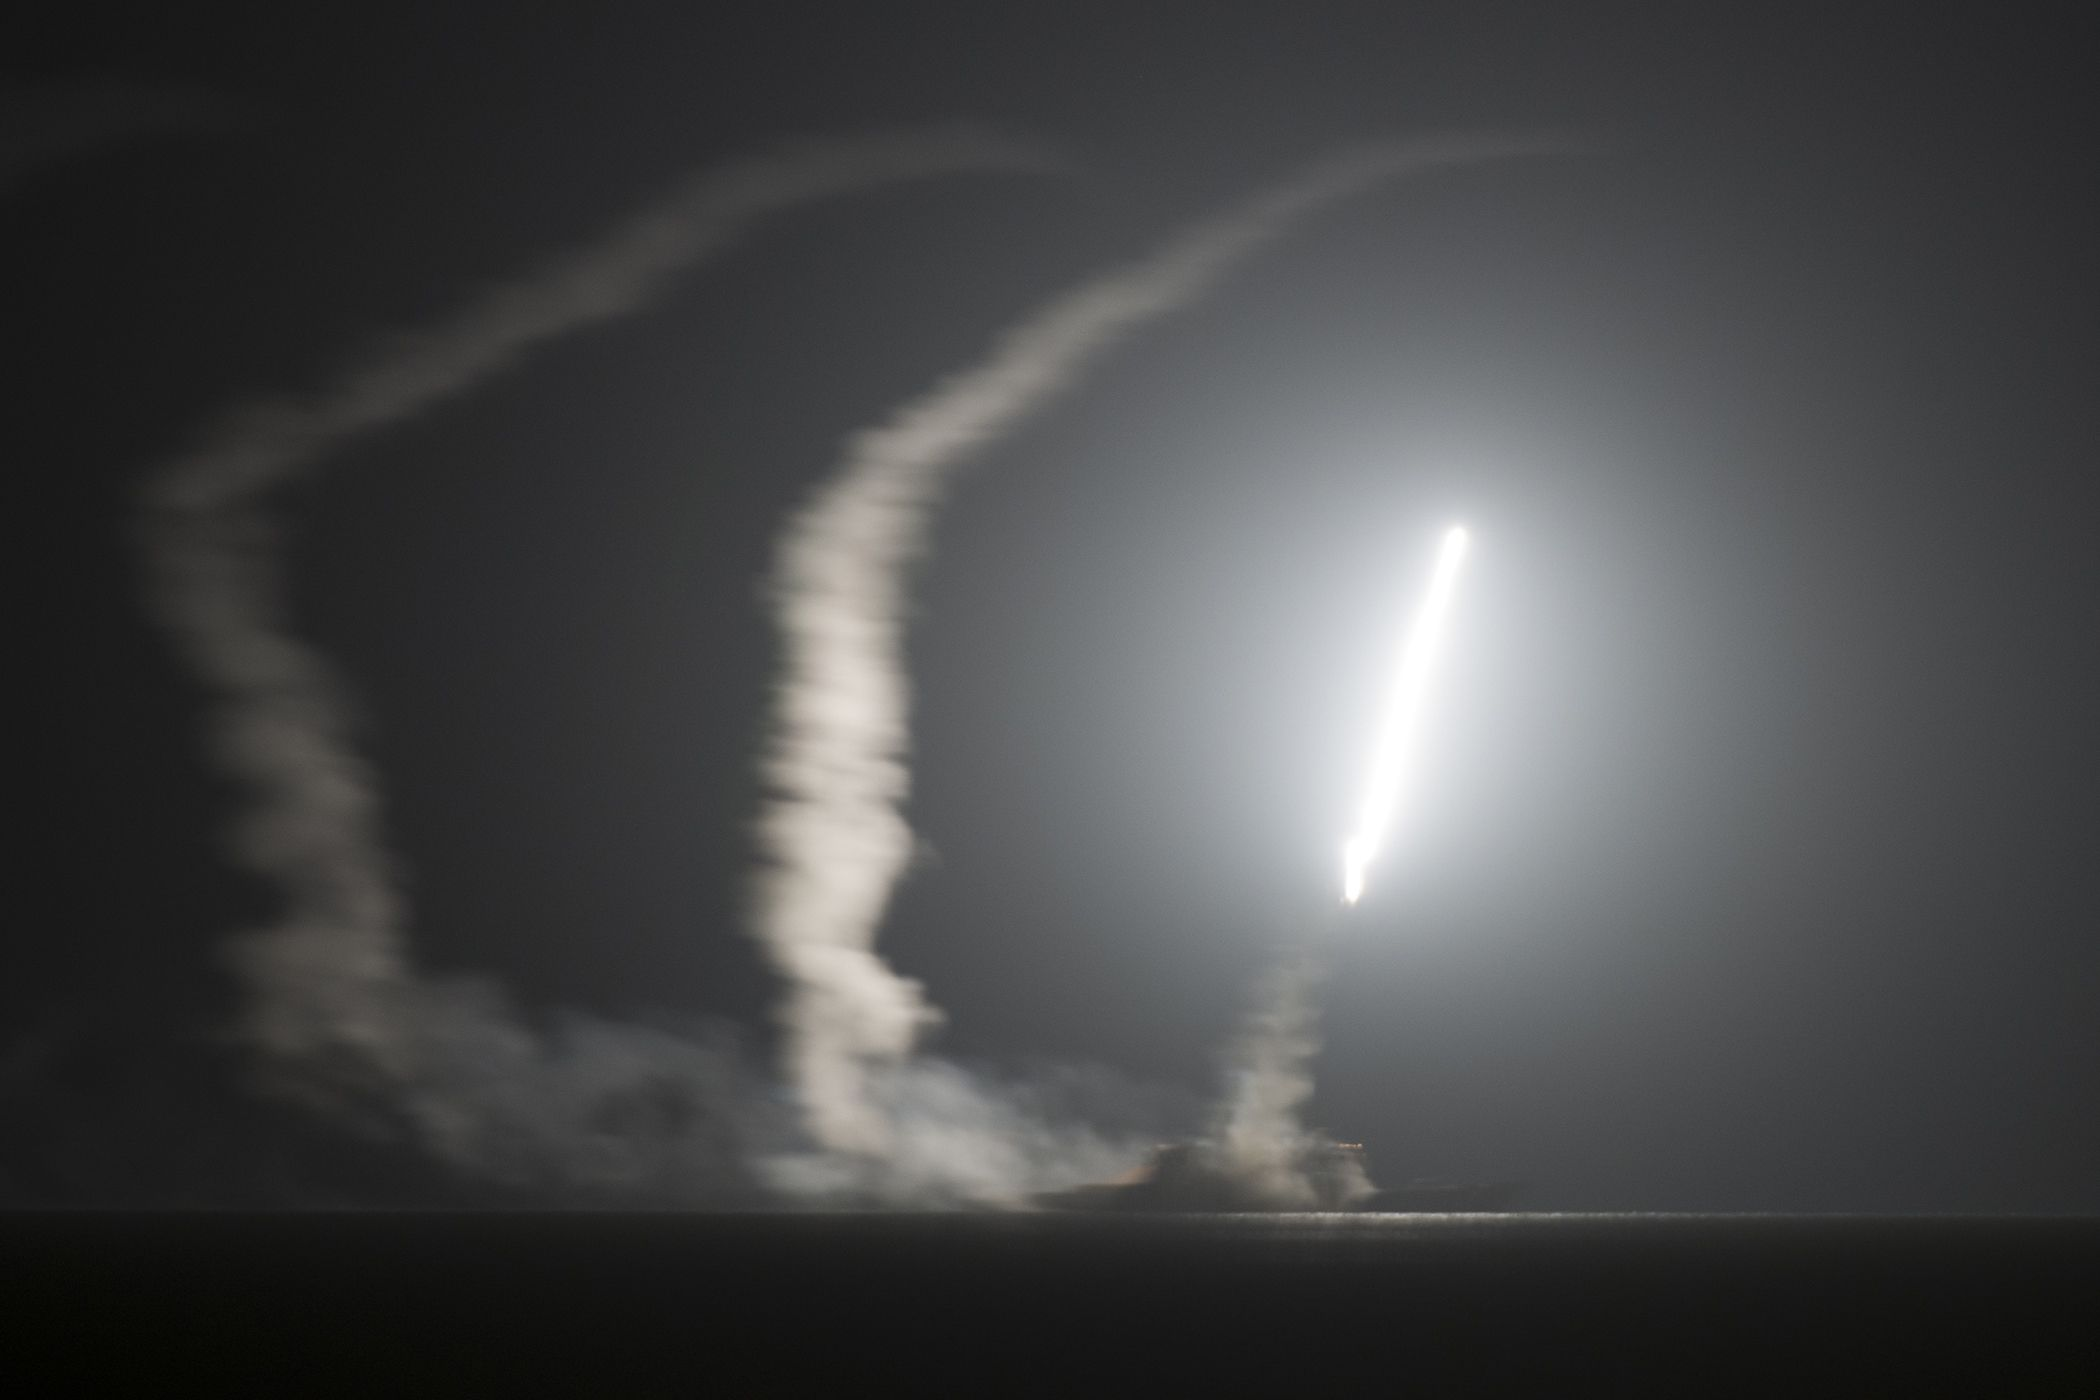 Tomahawk missile launch US Navy Arabian Gulf